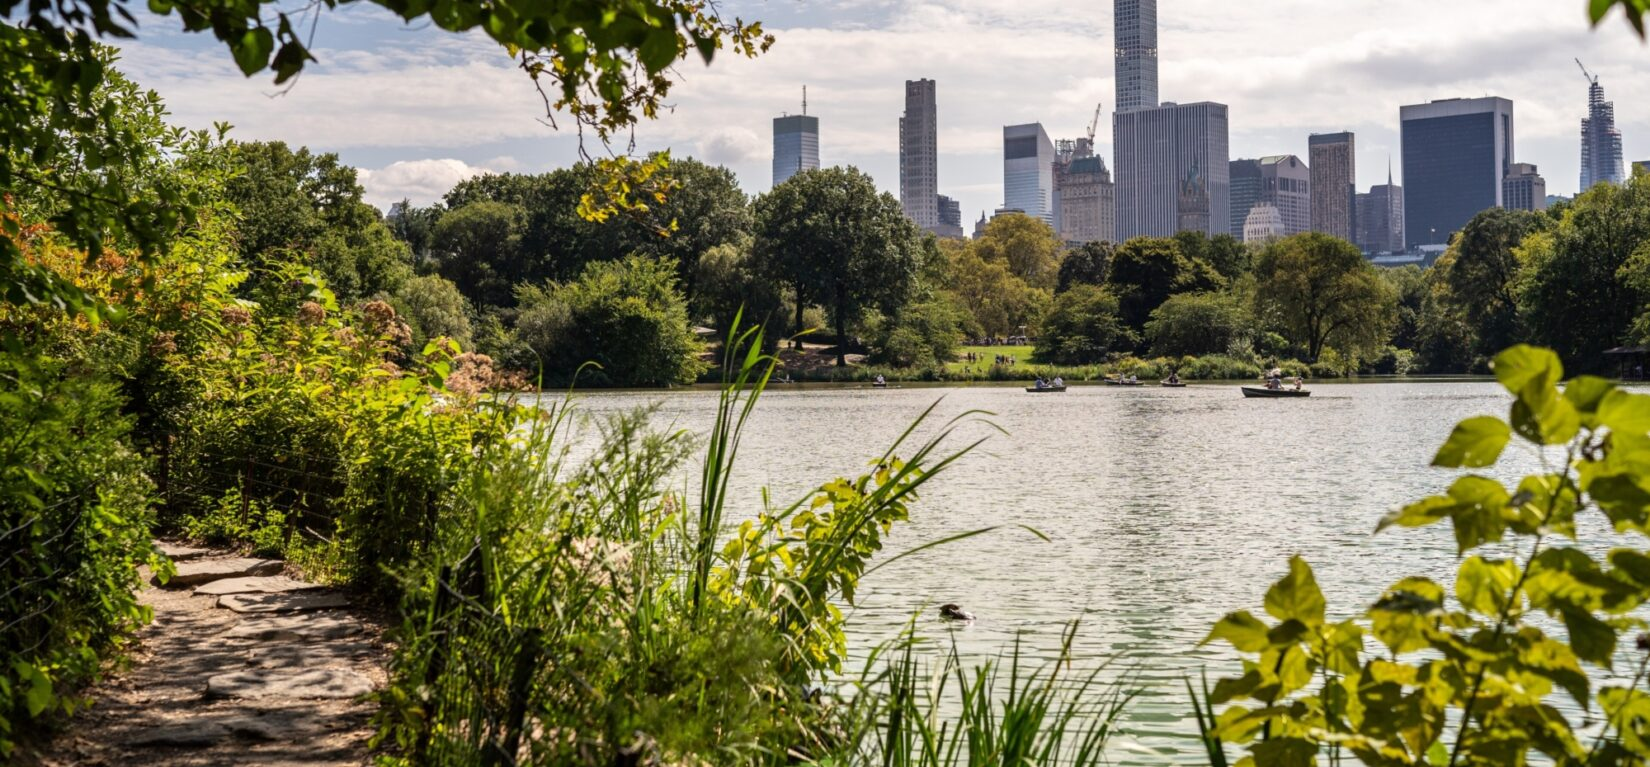 A view looking across the lake toward the skyline of Manhattan's East Side